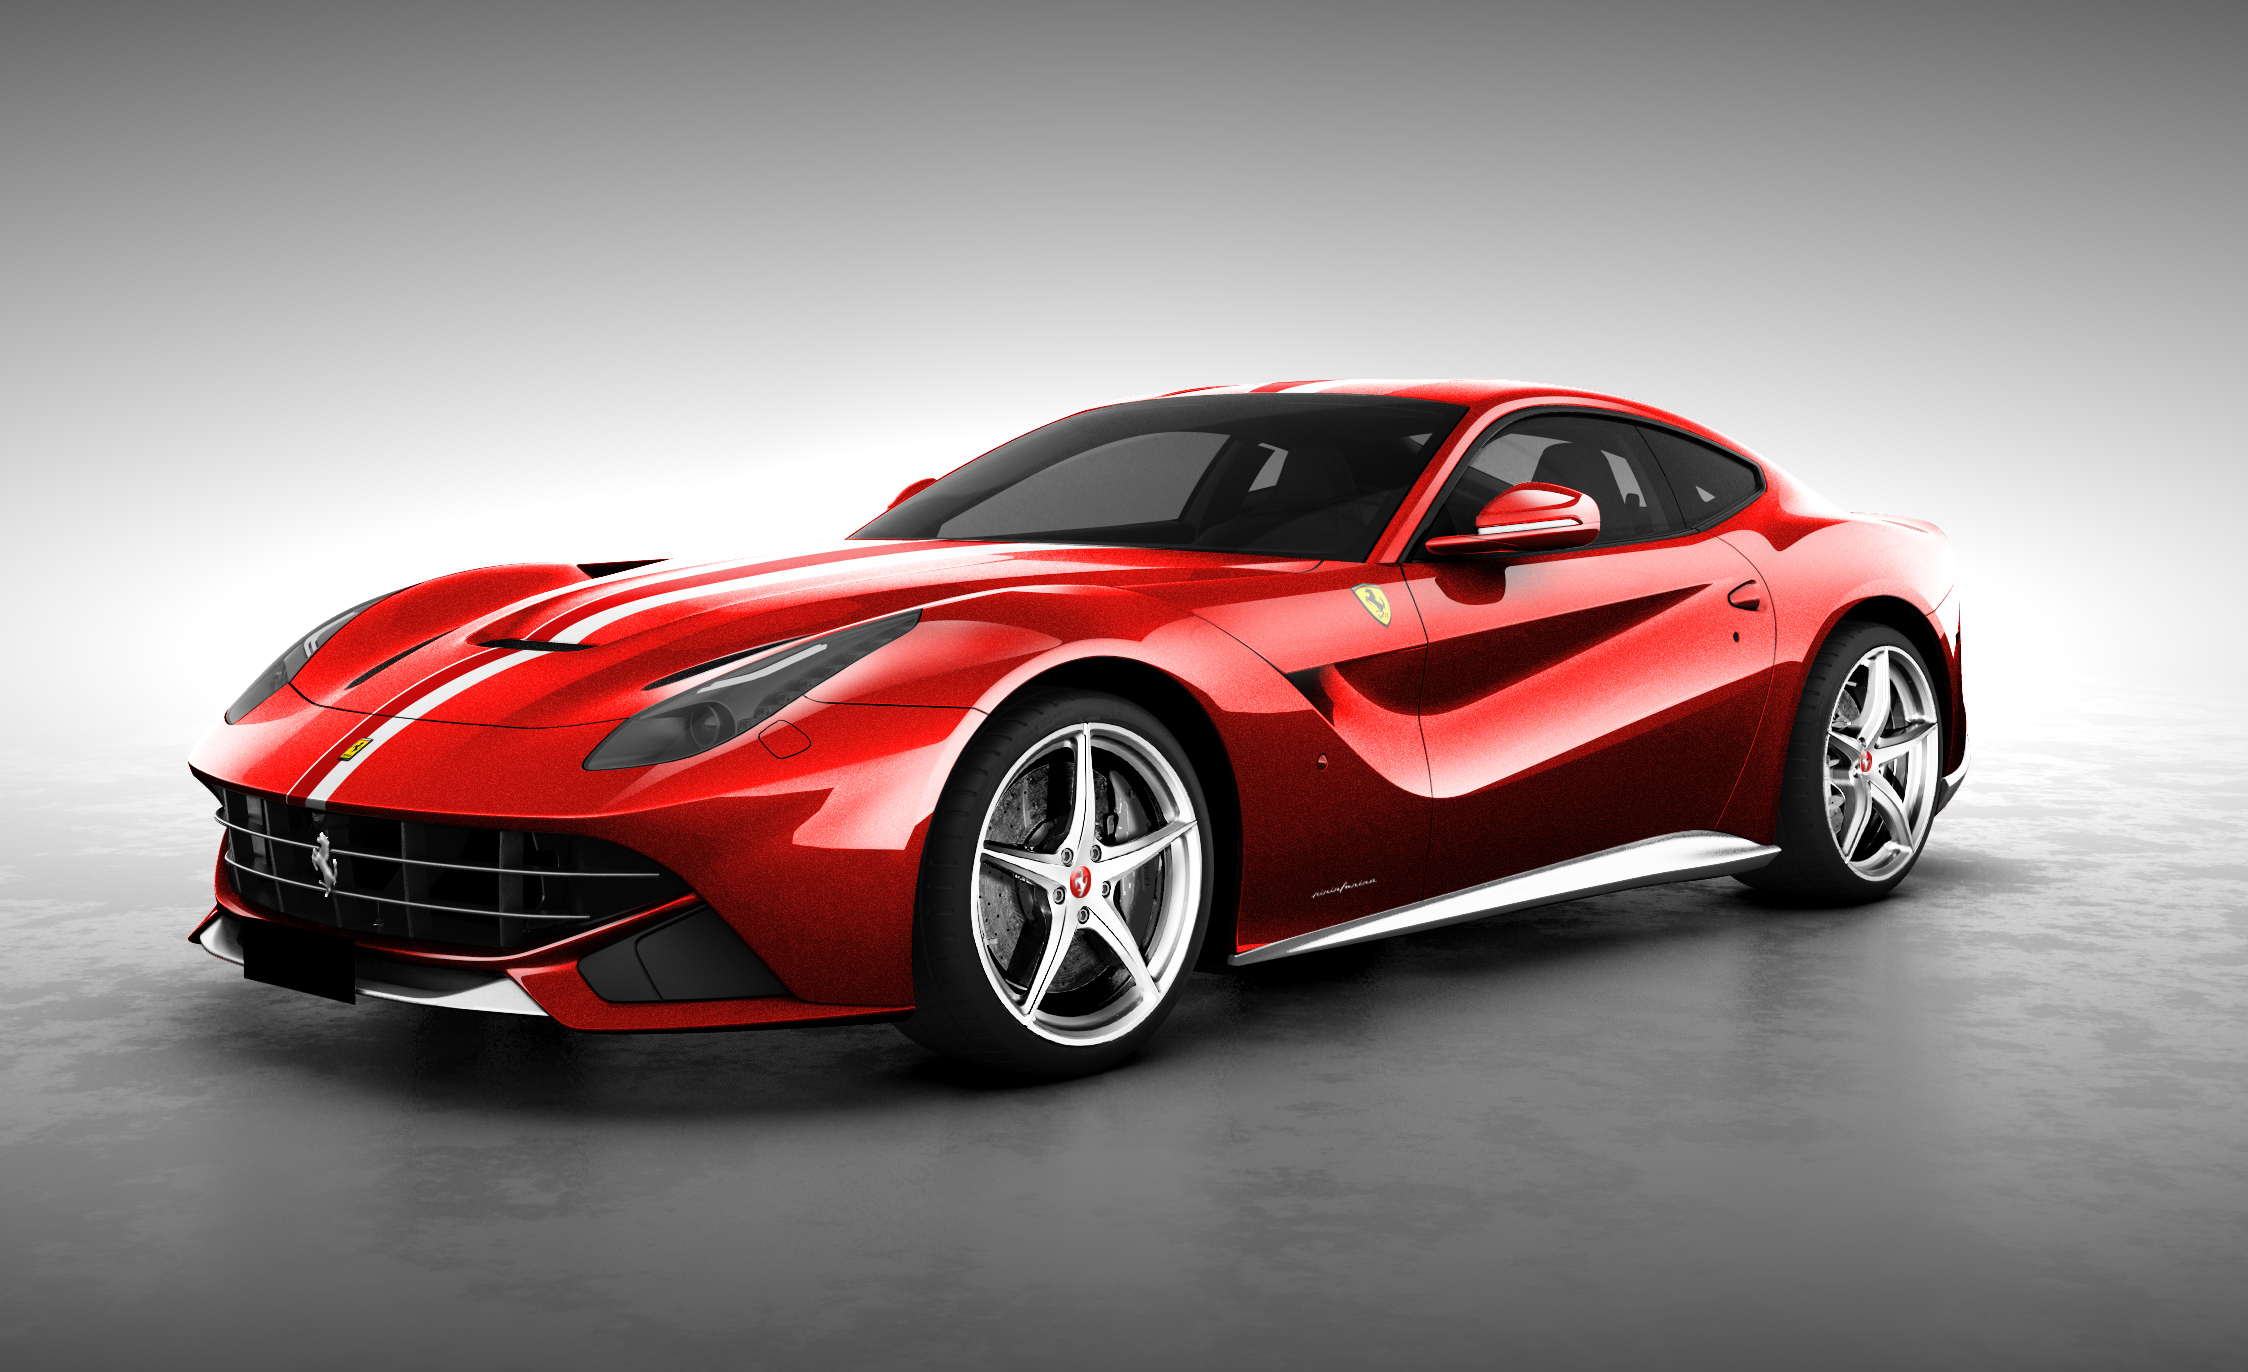 ferrari f12 berlinetta sg50 celebrates singapore s independence. Cars Review. Best American Auto & Cars Review